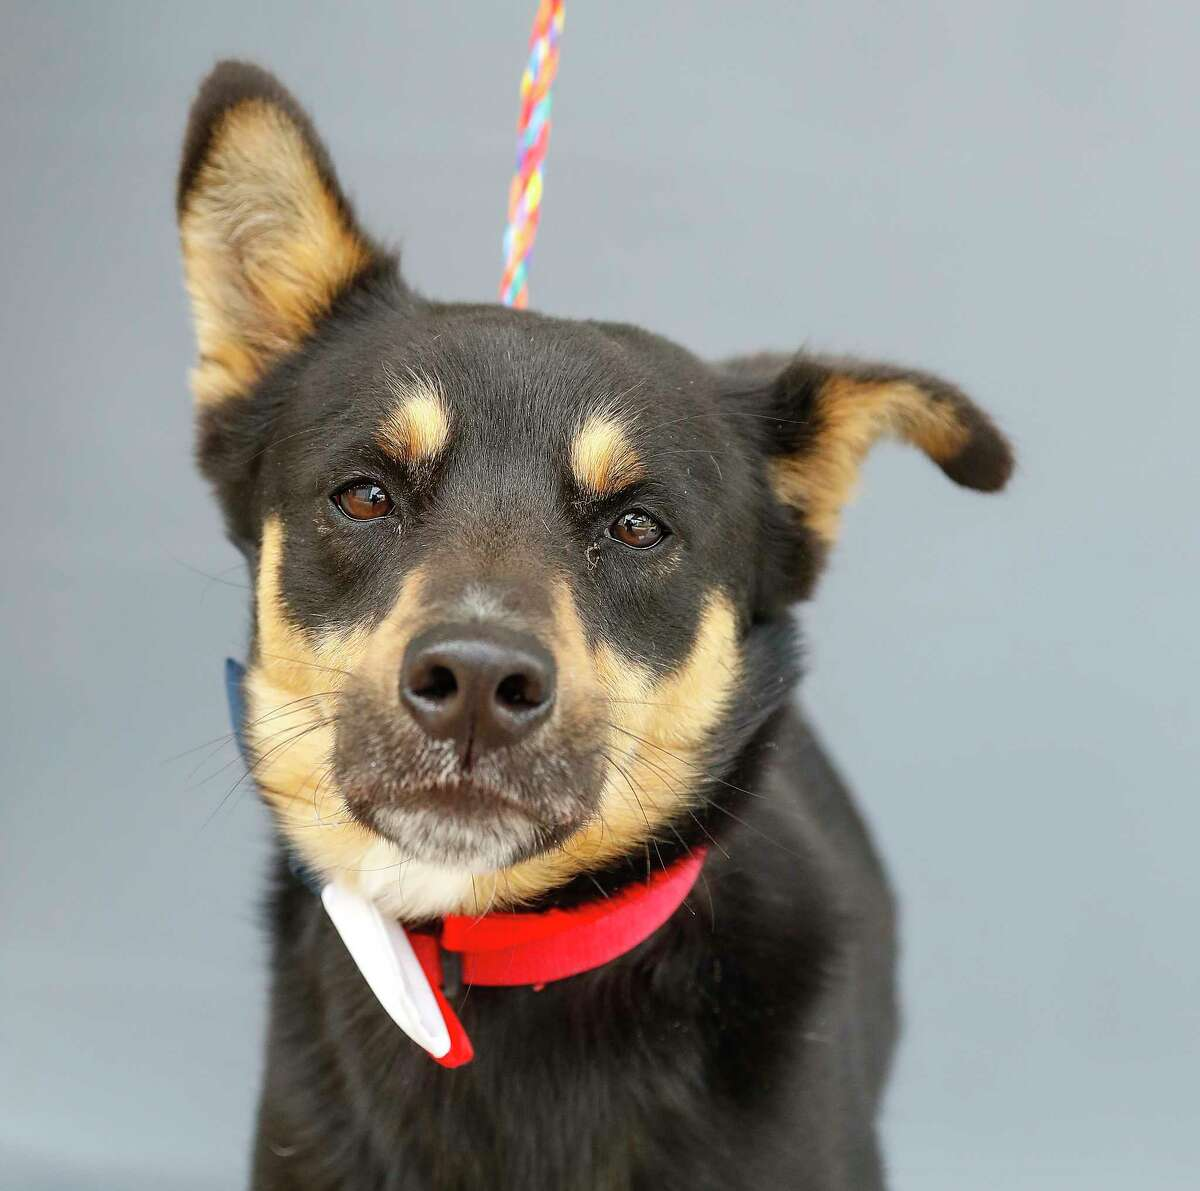 Chase (A571812) is a 2-year-old, male German Shepherd mix available for adoption from Harris County Pets. Photographed Wednesday, April 21, 2021, in Houston. Chase was surrendered by his owners as he was not a good fit for small children. He loves other dogs, men and women.